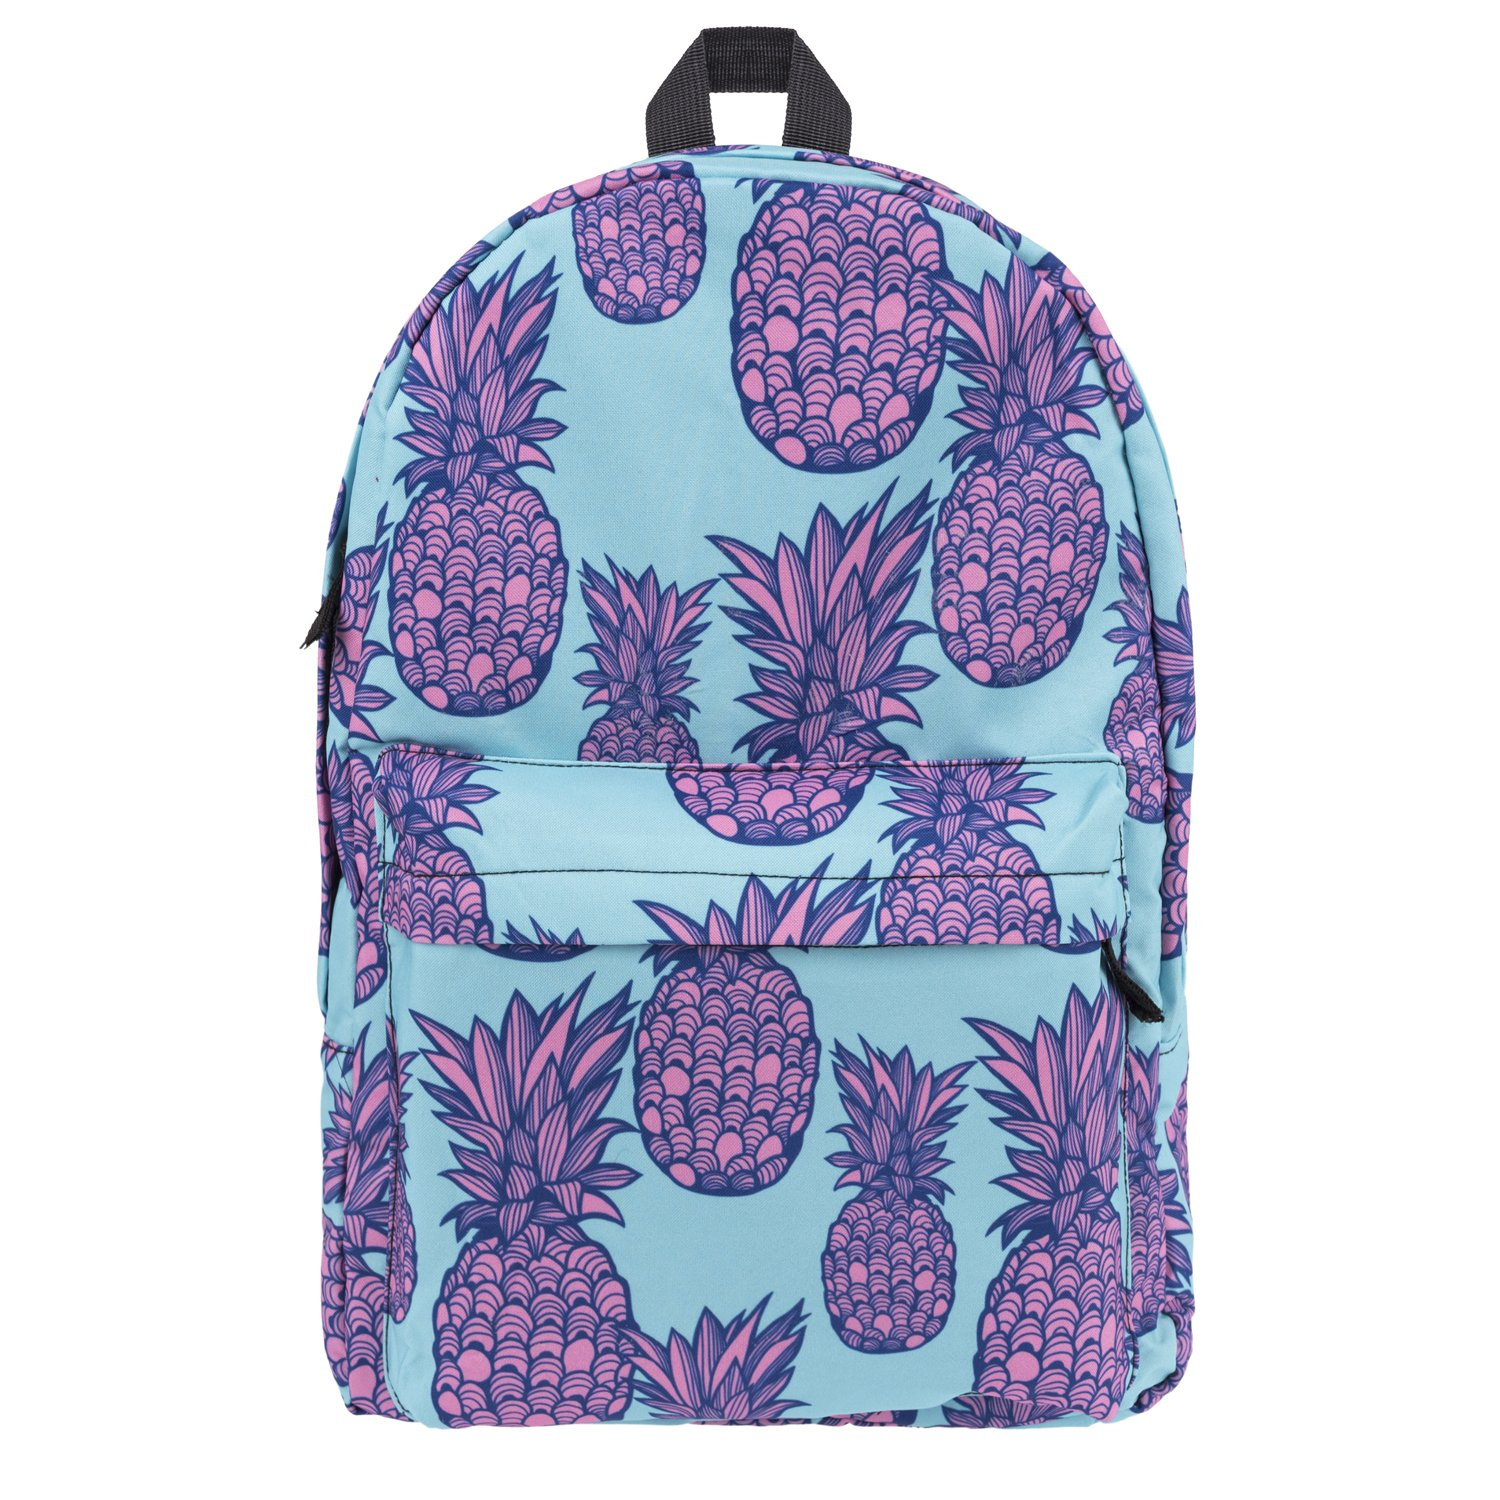 ed6dd9d3ab Pulama Canvas Cute Printed Backpack Emoji Unicon School Bag Large Capacity  Daypack Purple Pineapple  Amazon.in  Toys   Games